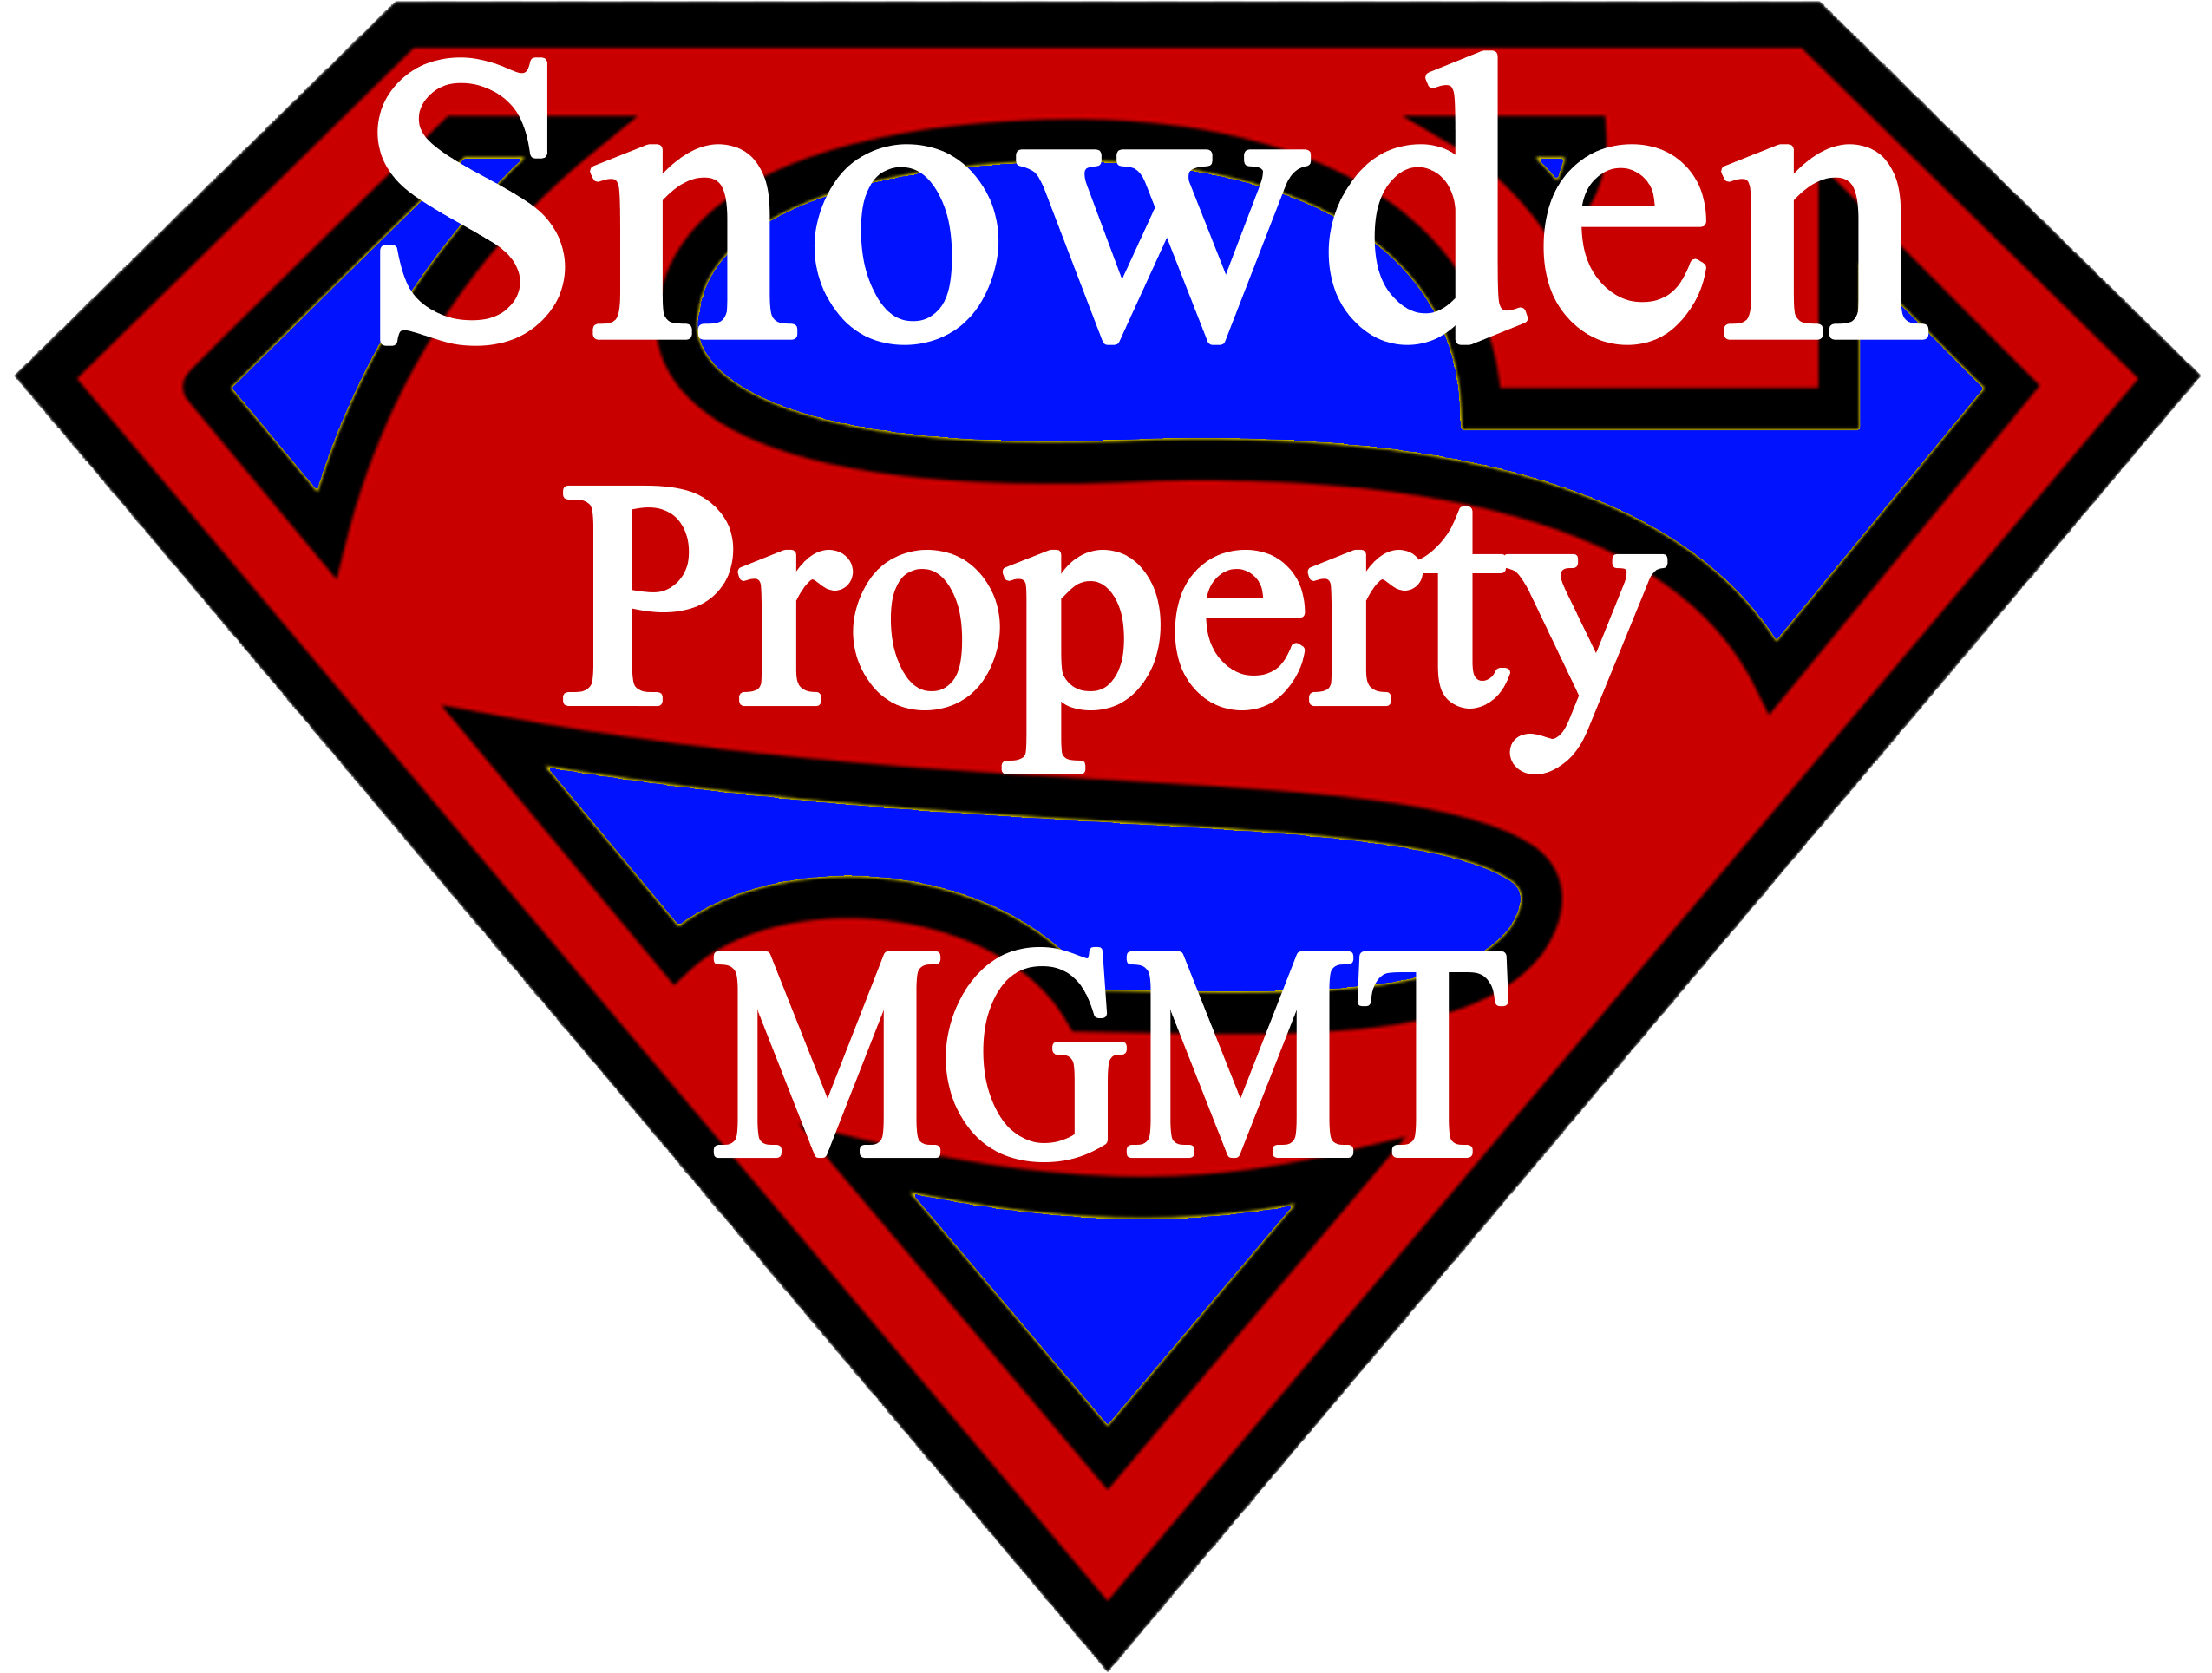 Snowden Property Management